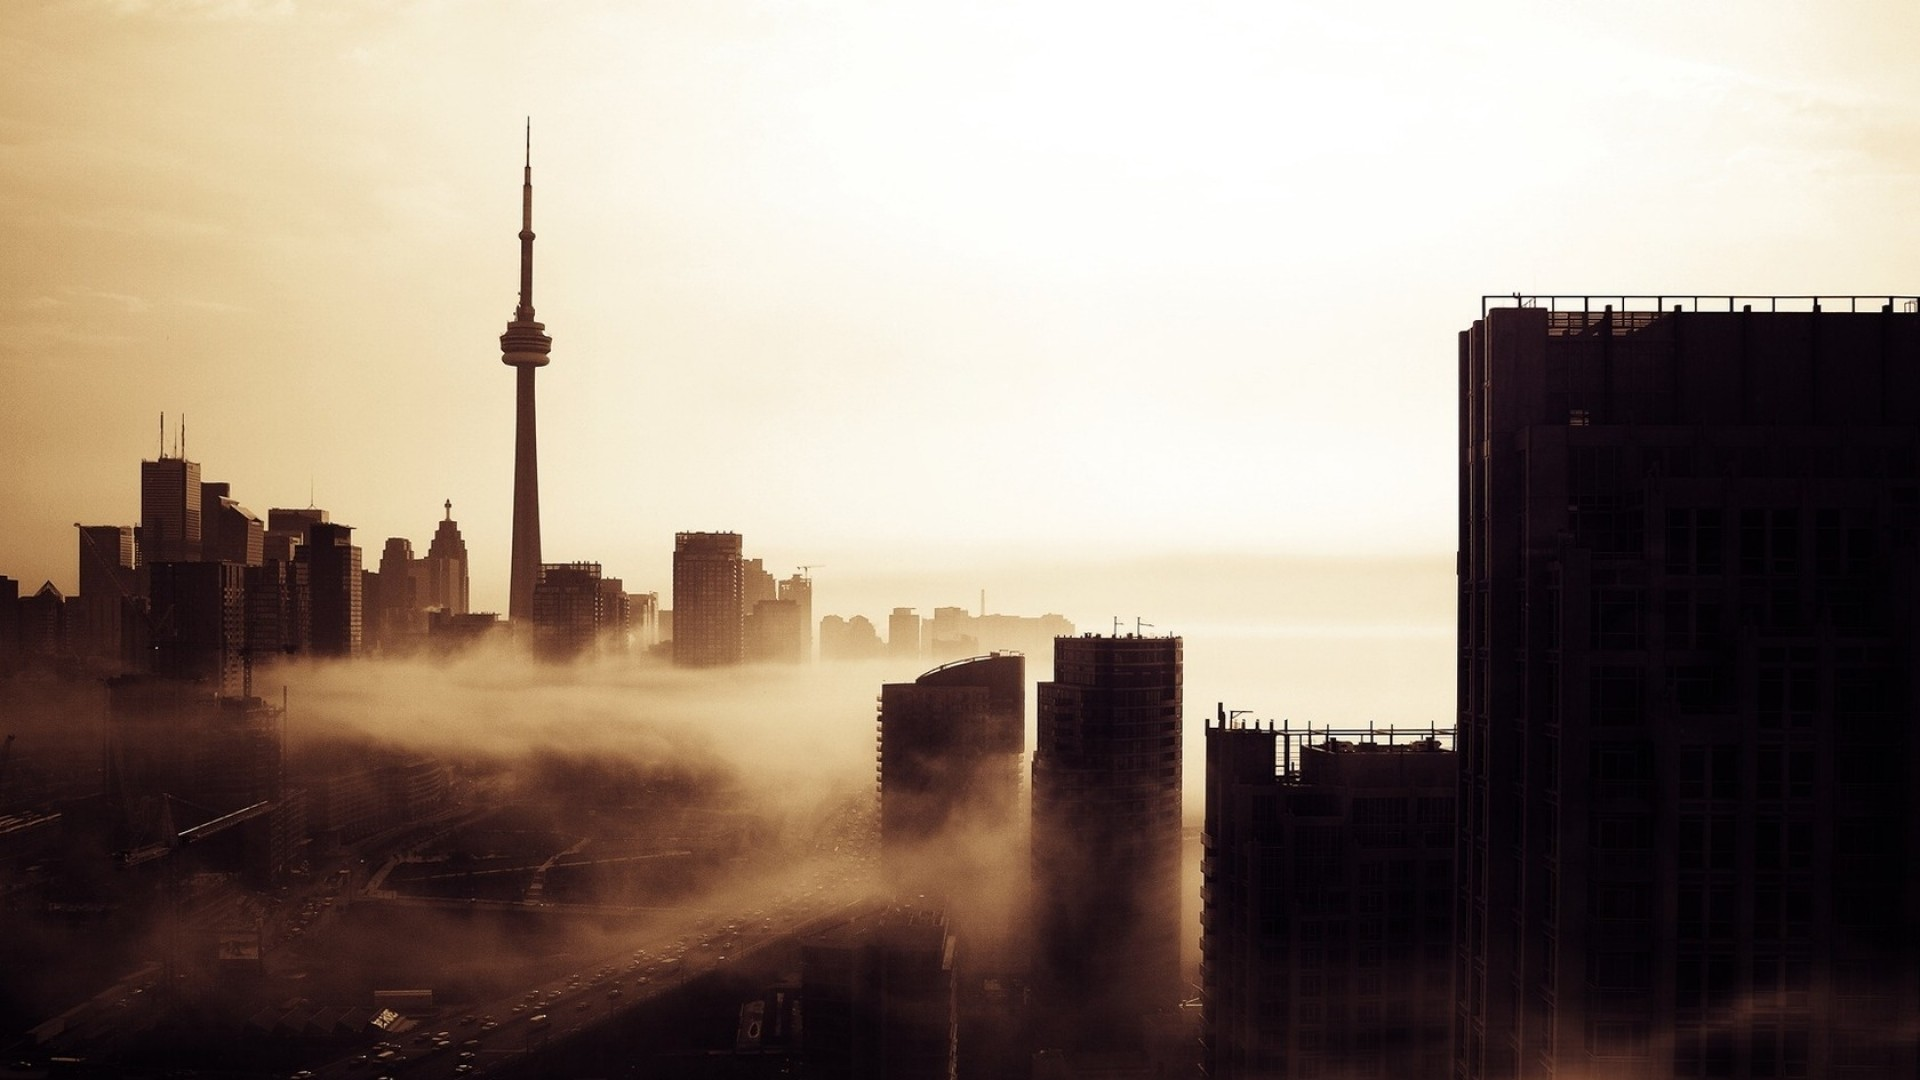 1920x1080 cool Toronto Skyline HD Image | AmazingPict.com - Wallpapers .